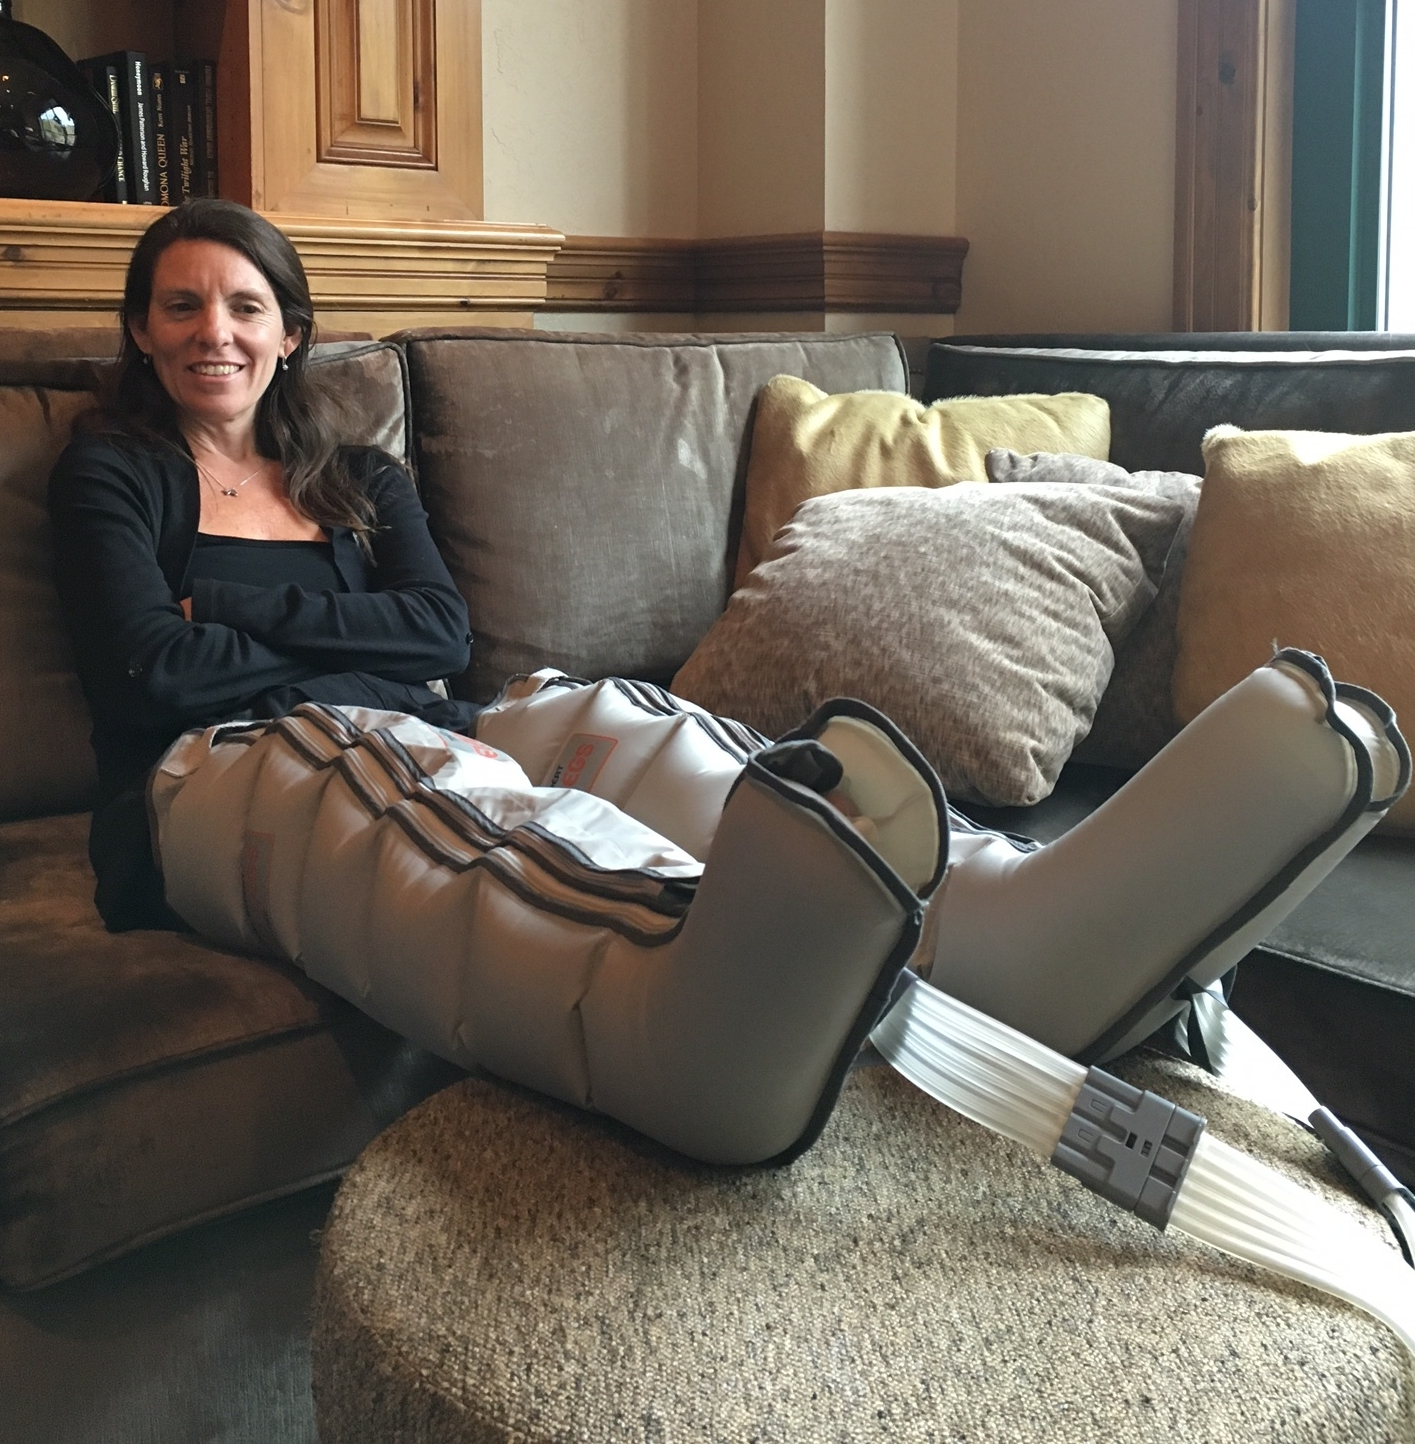 Heal up at The Park Hyatt Beaver Creek Skier Recovery Lounge in Elevated Legs.